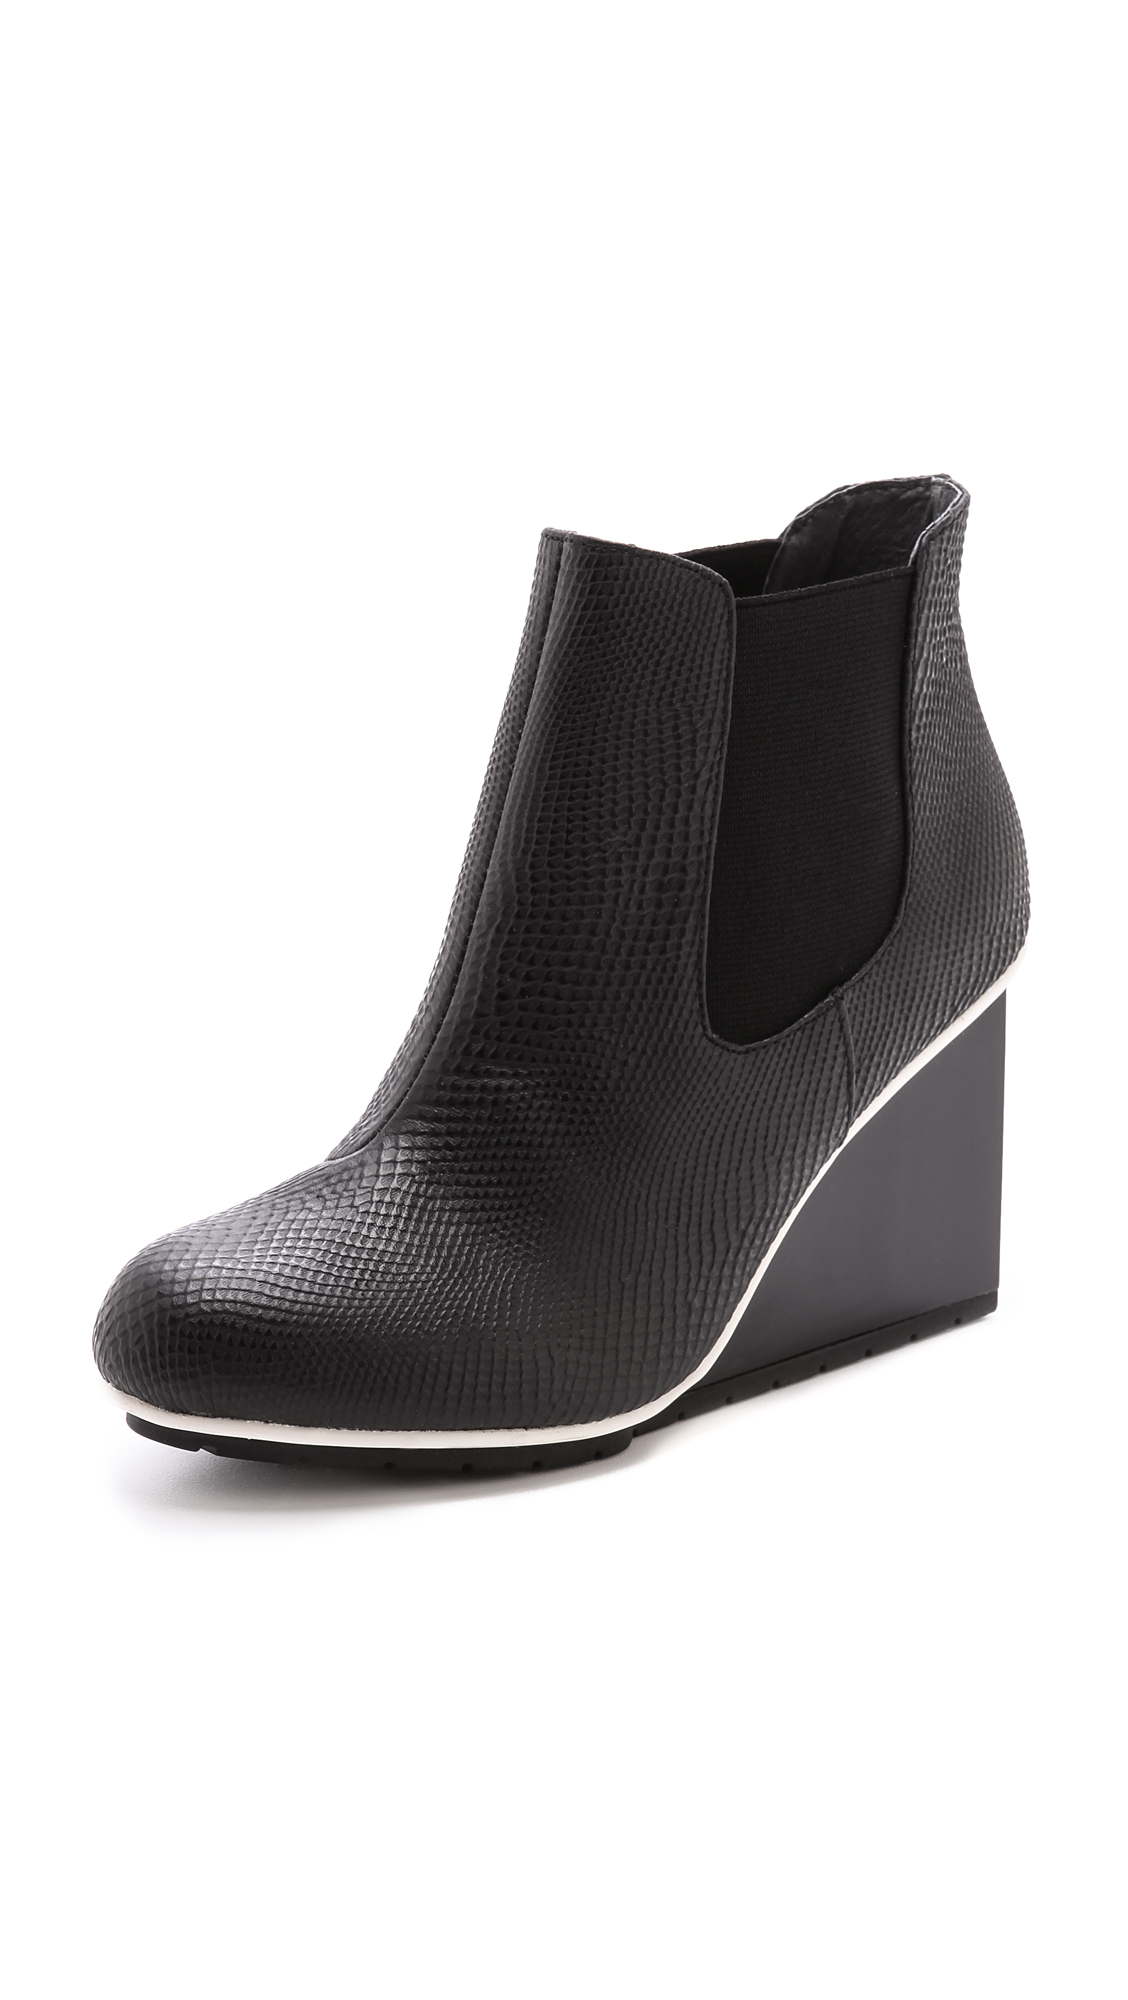 United Nude Chelsea Lo Boot Black - Ankle Boots